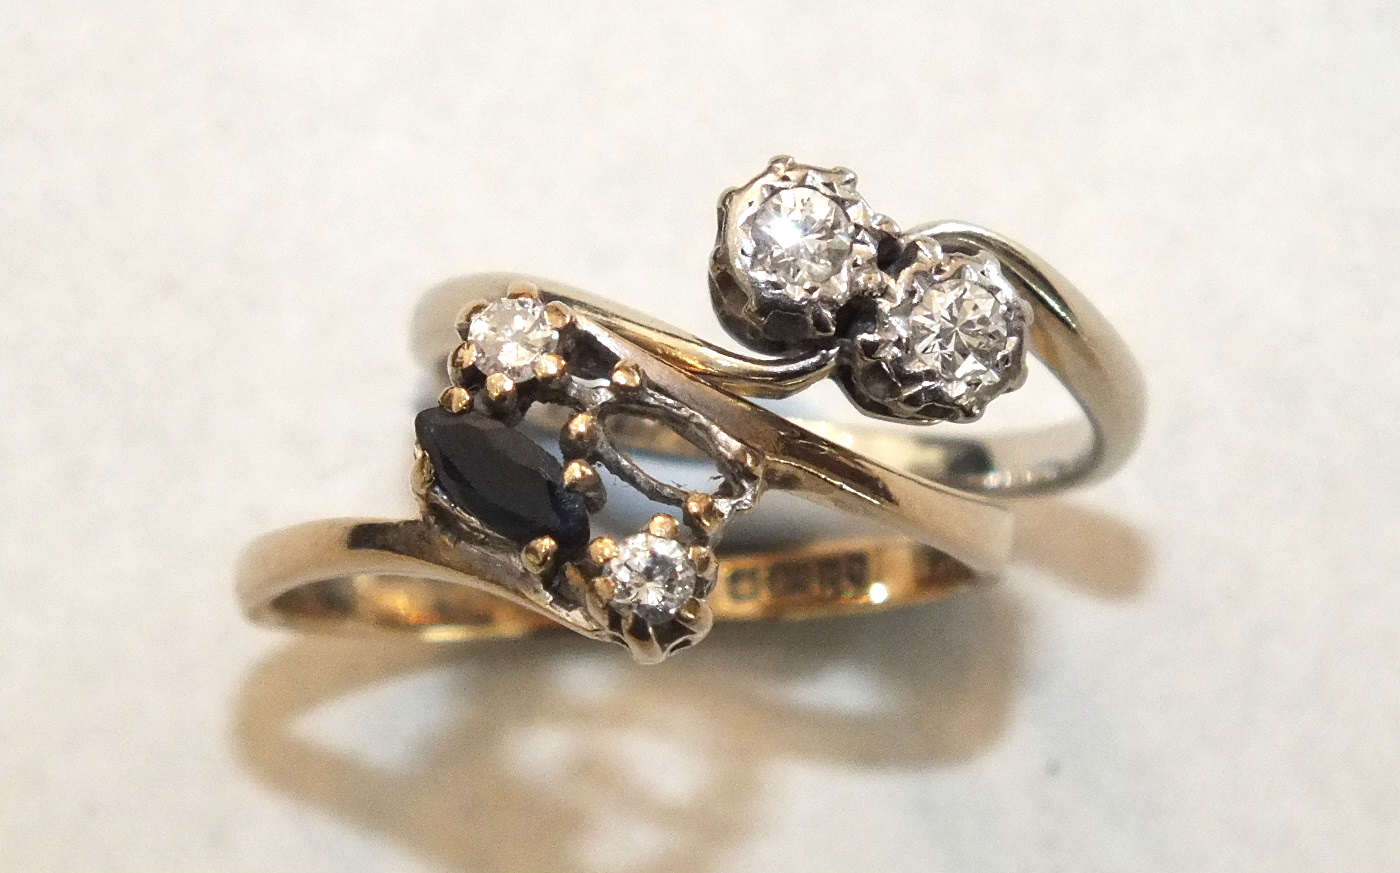 A diamond crossover ring with 18ct white gold and platinum mount, size J, 2.2g and a 9ct gold ring